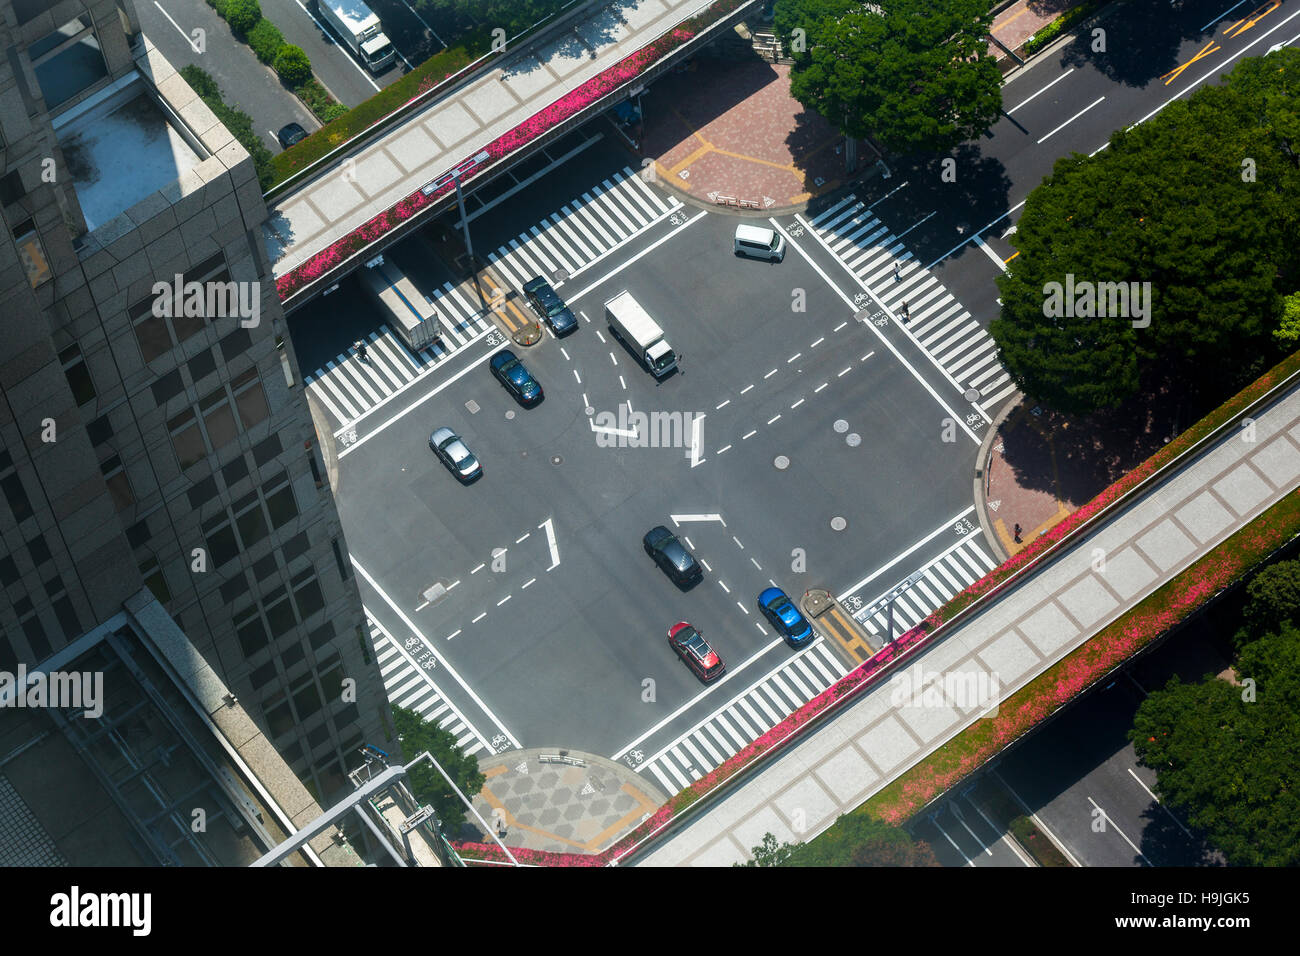 A road intersection in Tokyo, Japan viewed from a skyscraper window. - Stock Image